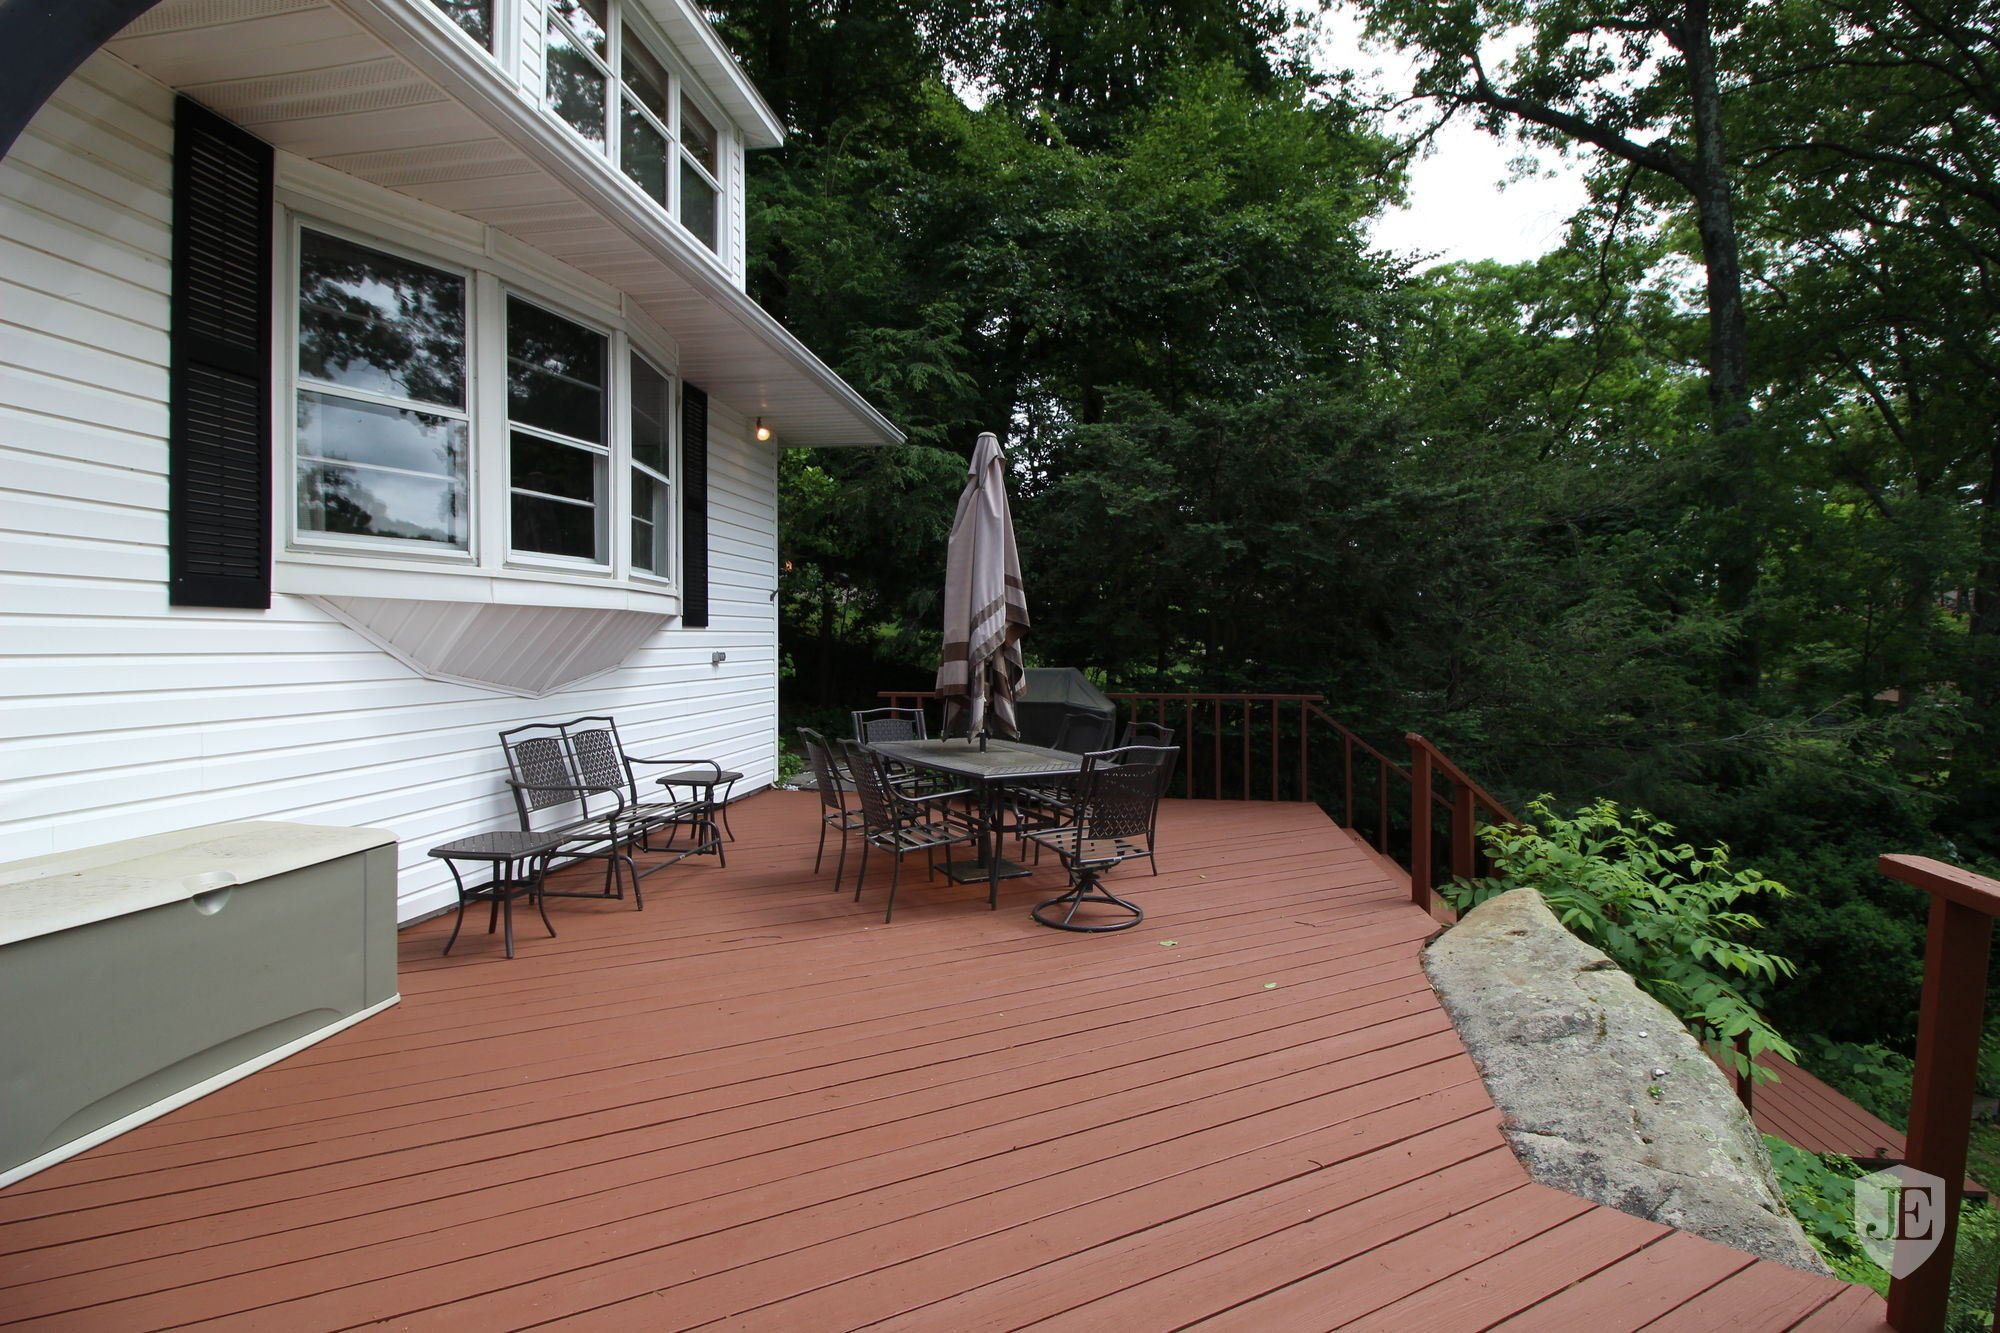 Danbury Ct Hardwood Flooring Of Direct Unobstructed Waterfront with Gorgeous Western Views In In Direct Unobstructed Waterfront with Gorgeous Western Views